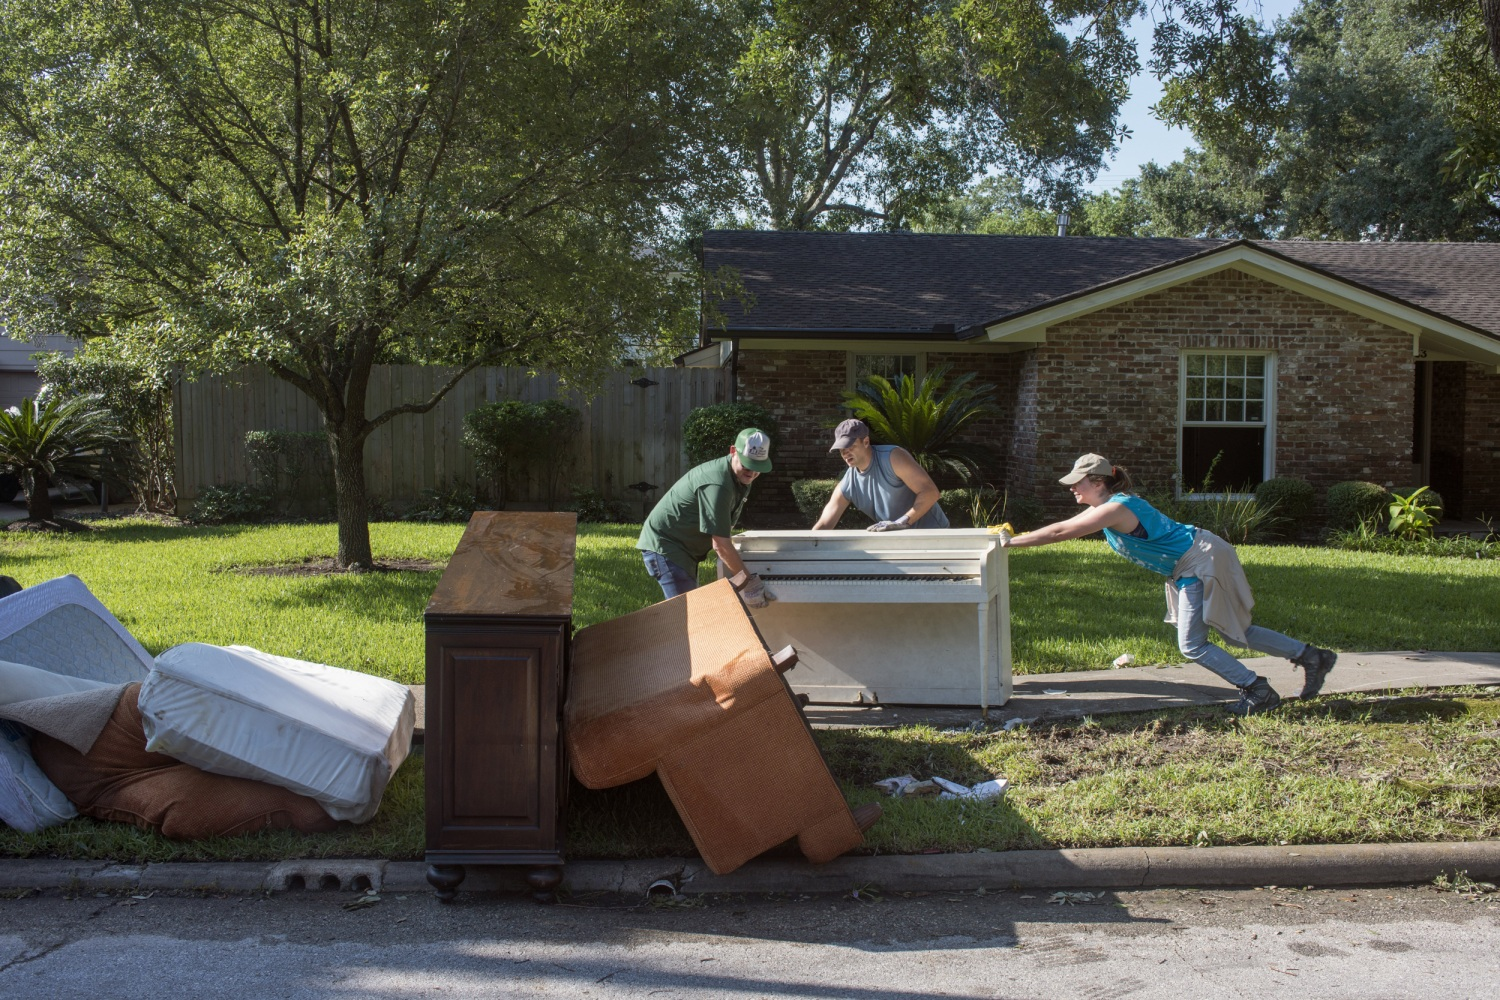 harvey victims begin returning home to damage and uncertainty